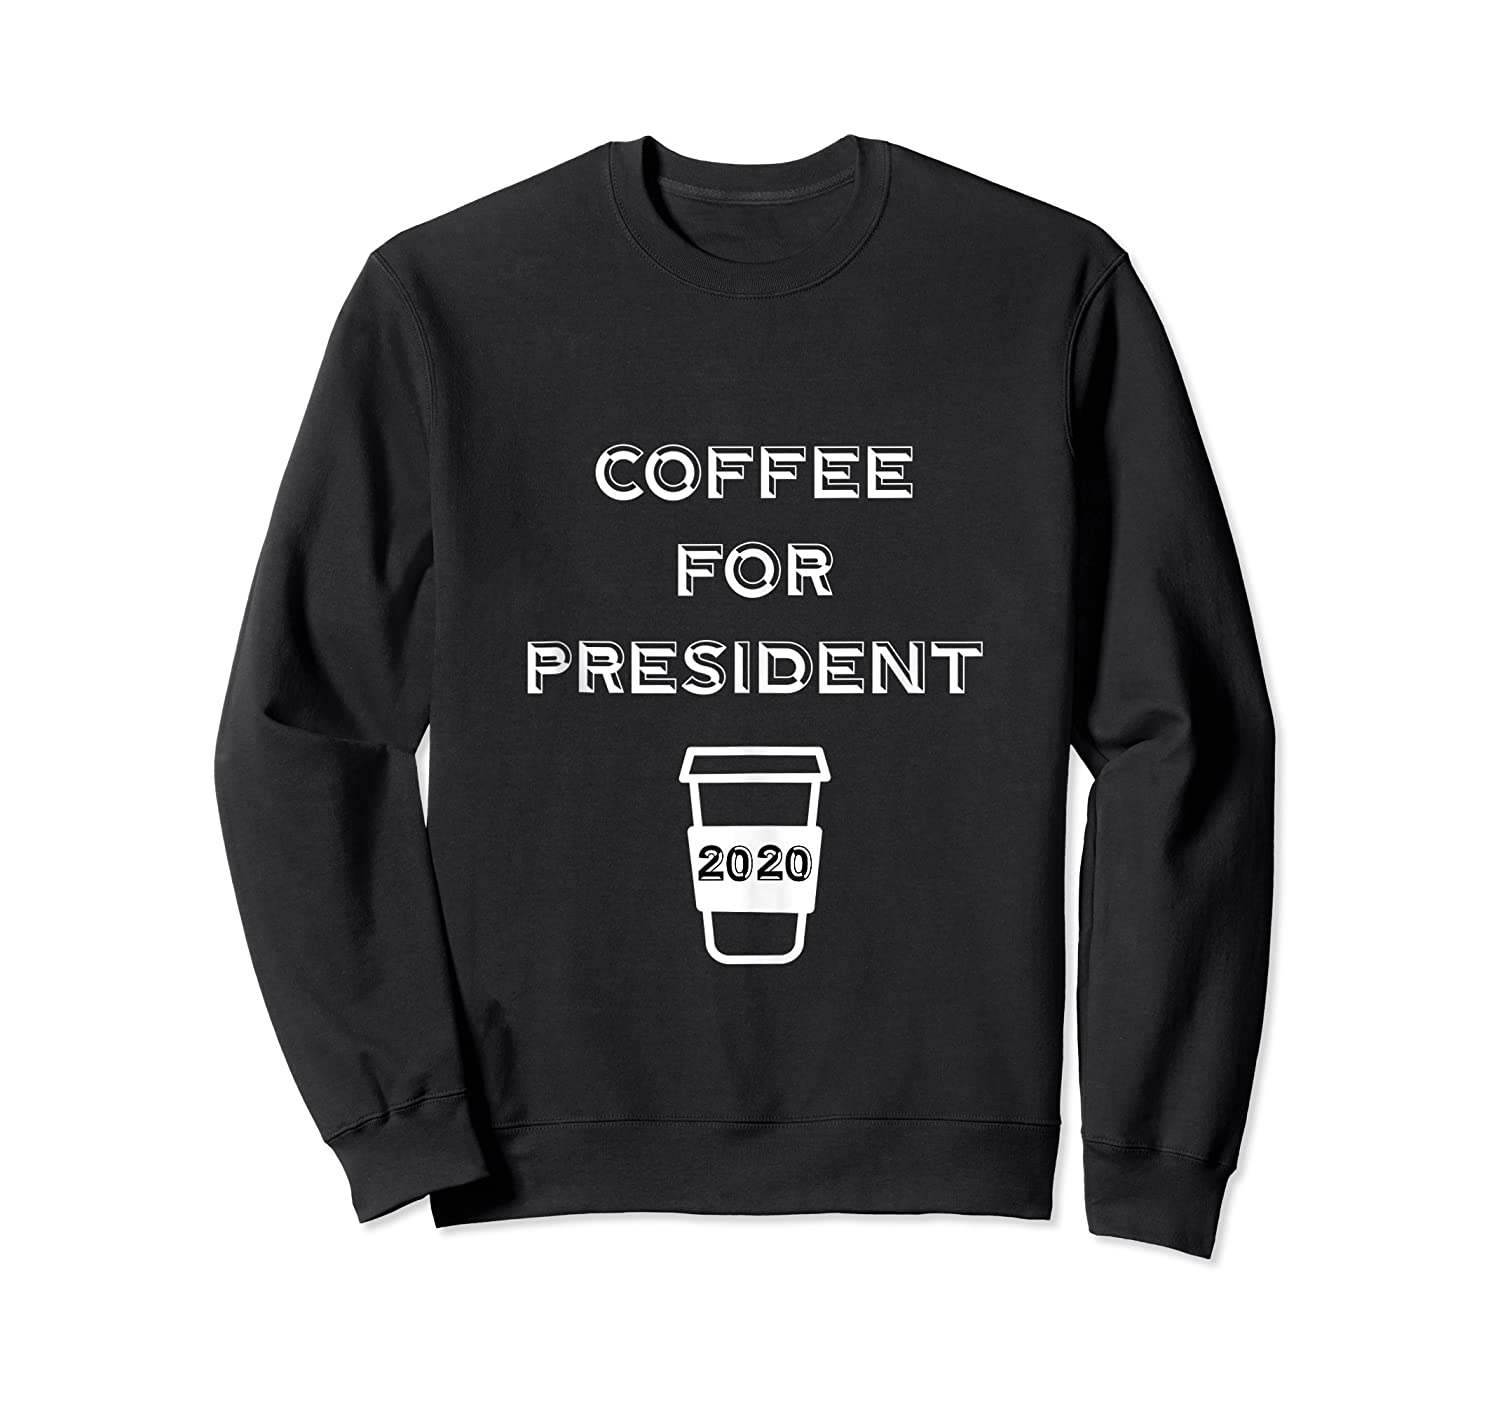 Coffee For President 2020 Funny Presidential Election Day Tank Top Shirts Crewneck Sweater